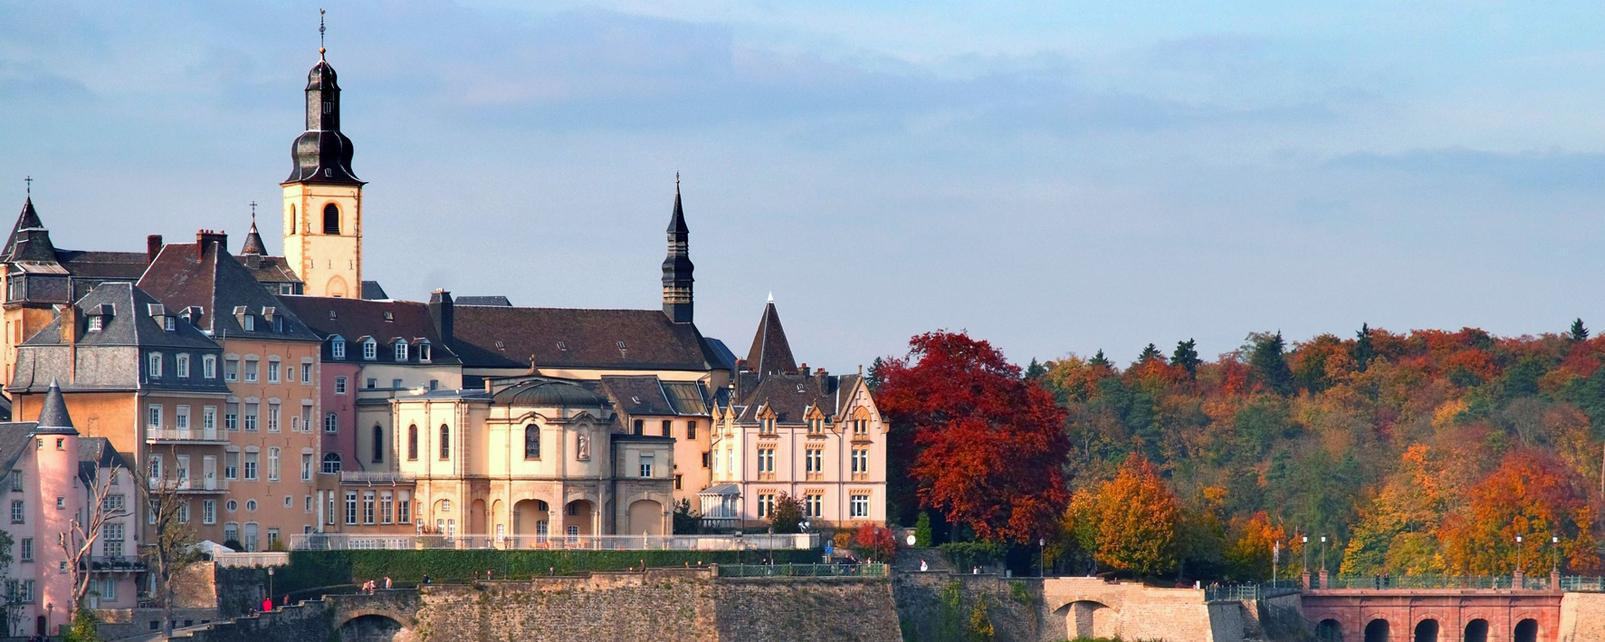 Weather Forecast Luxembourg In October Best Time To Go